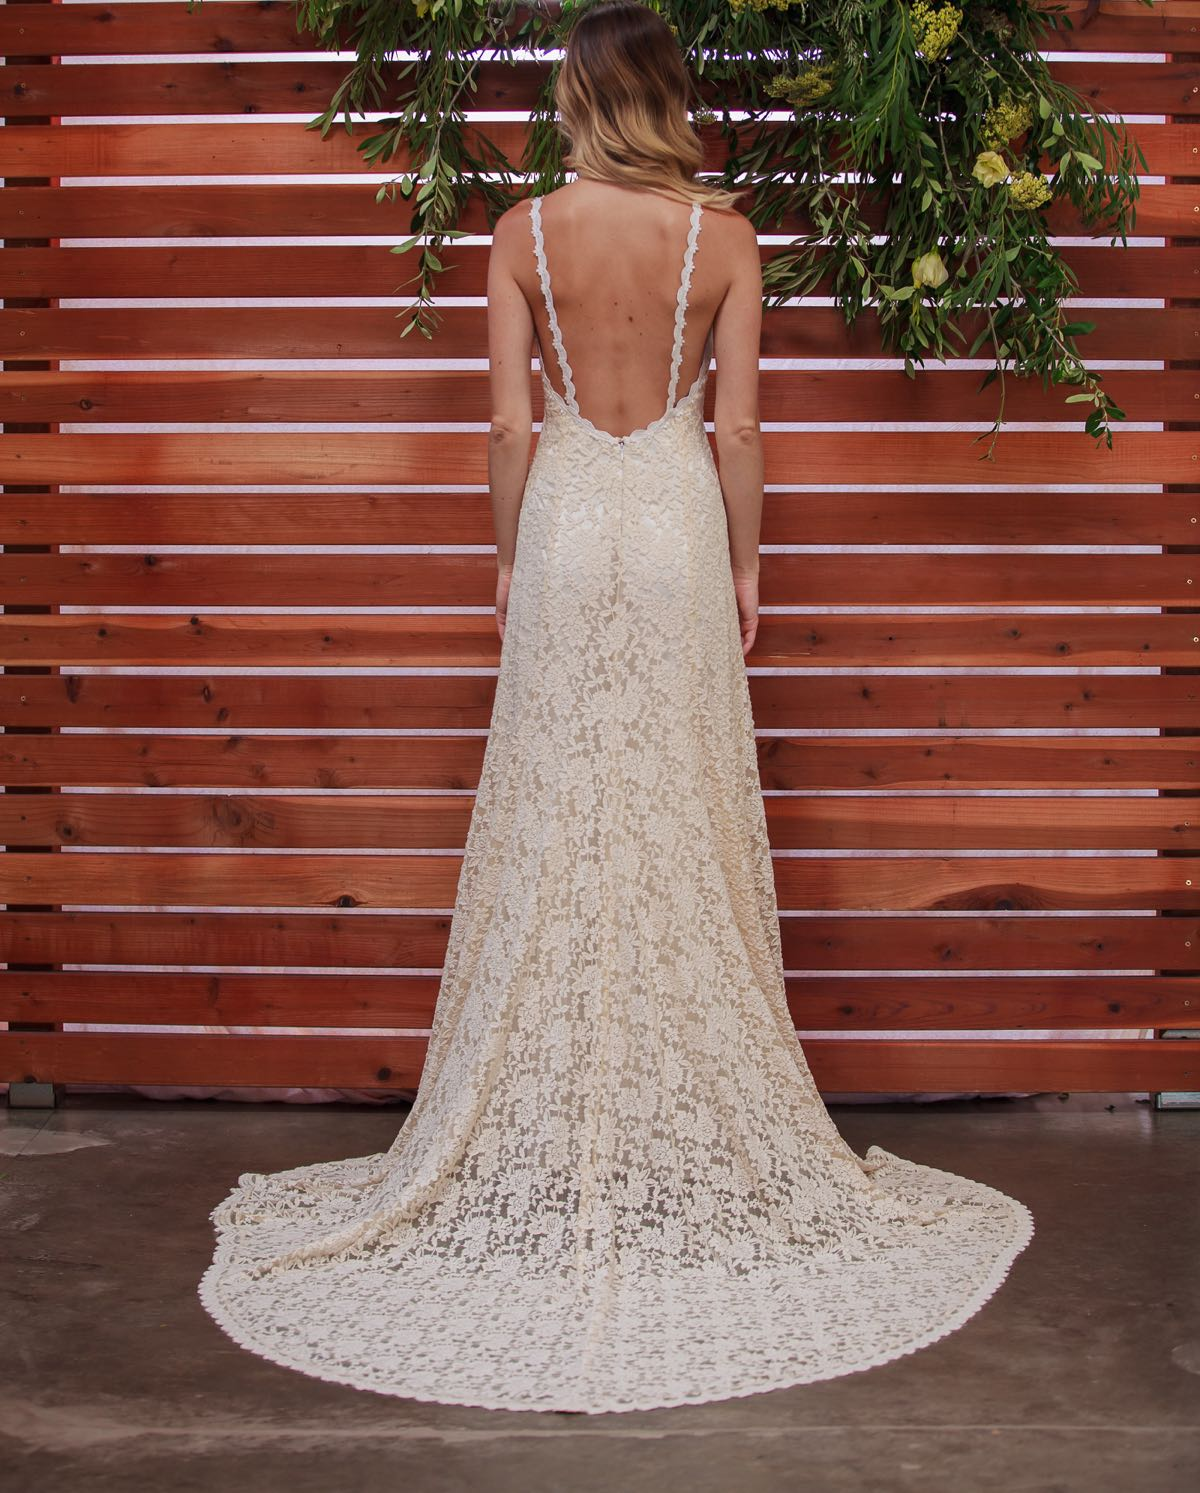 Amber Backless Bohemian Wedding Dress | Dreamers and Lovers